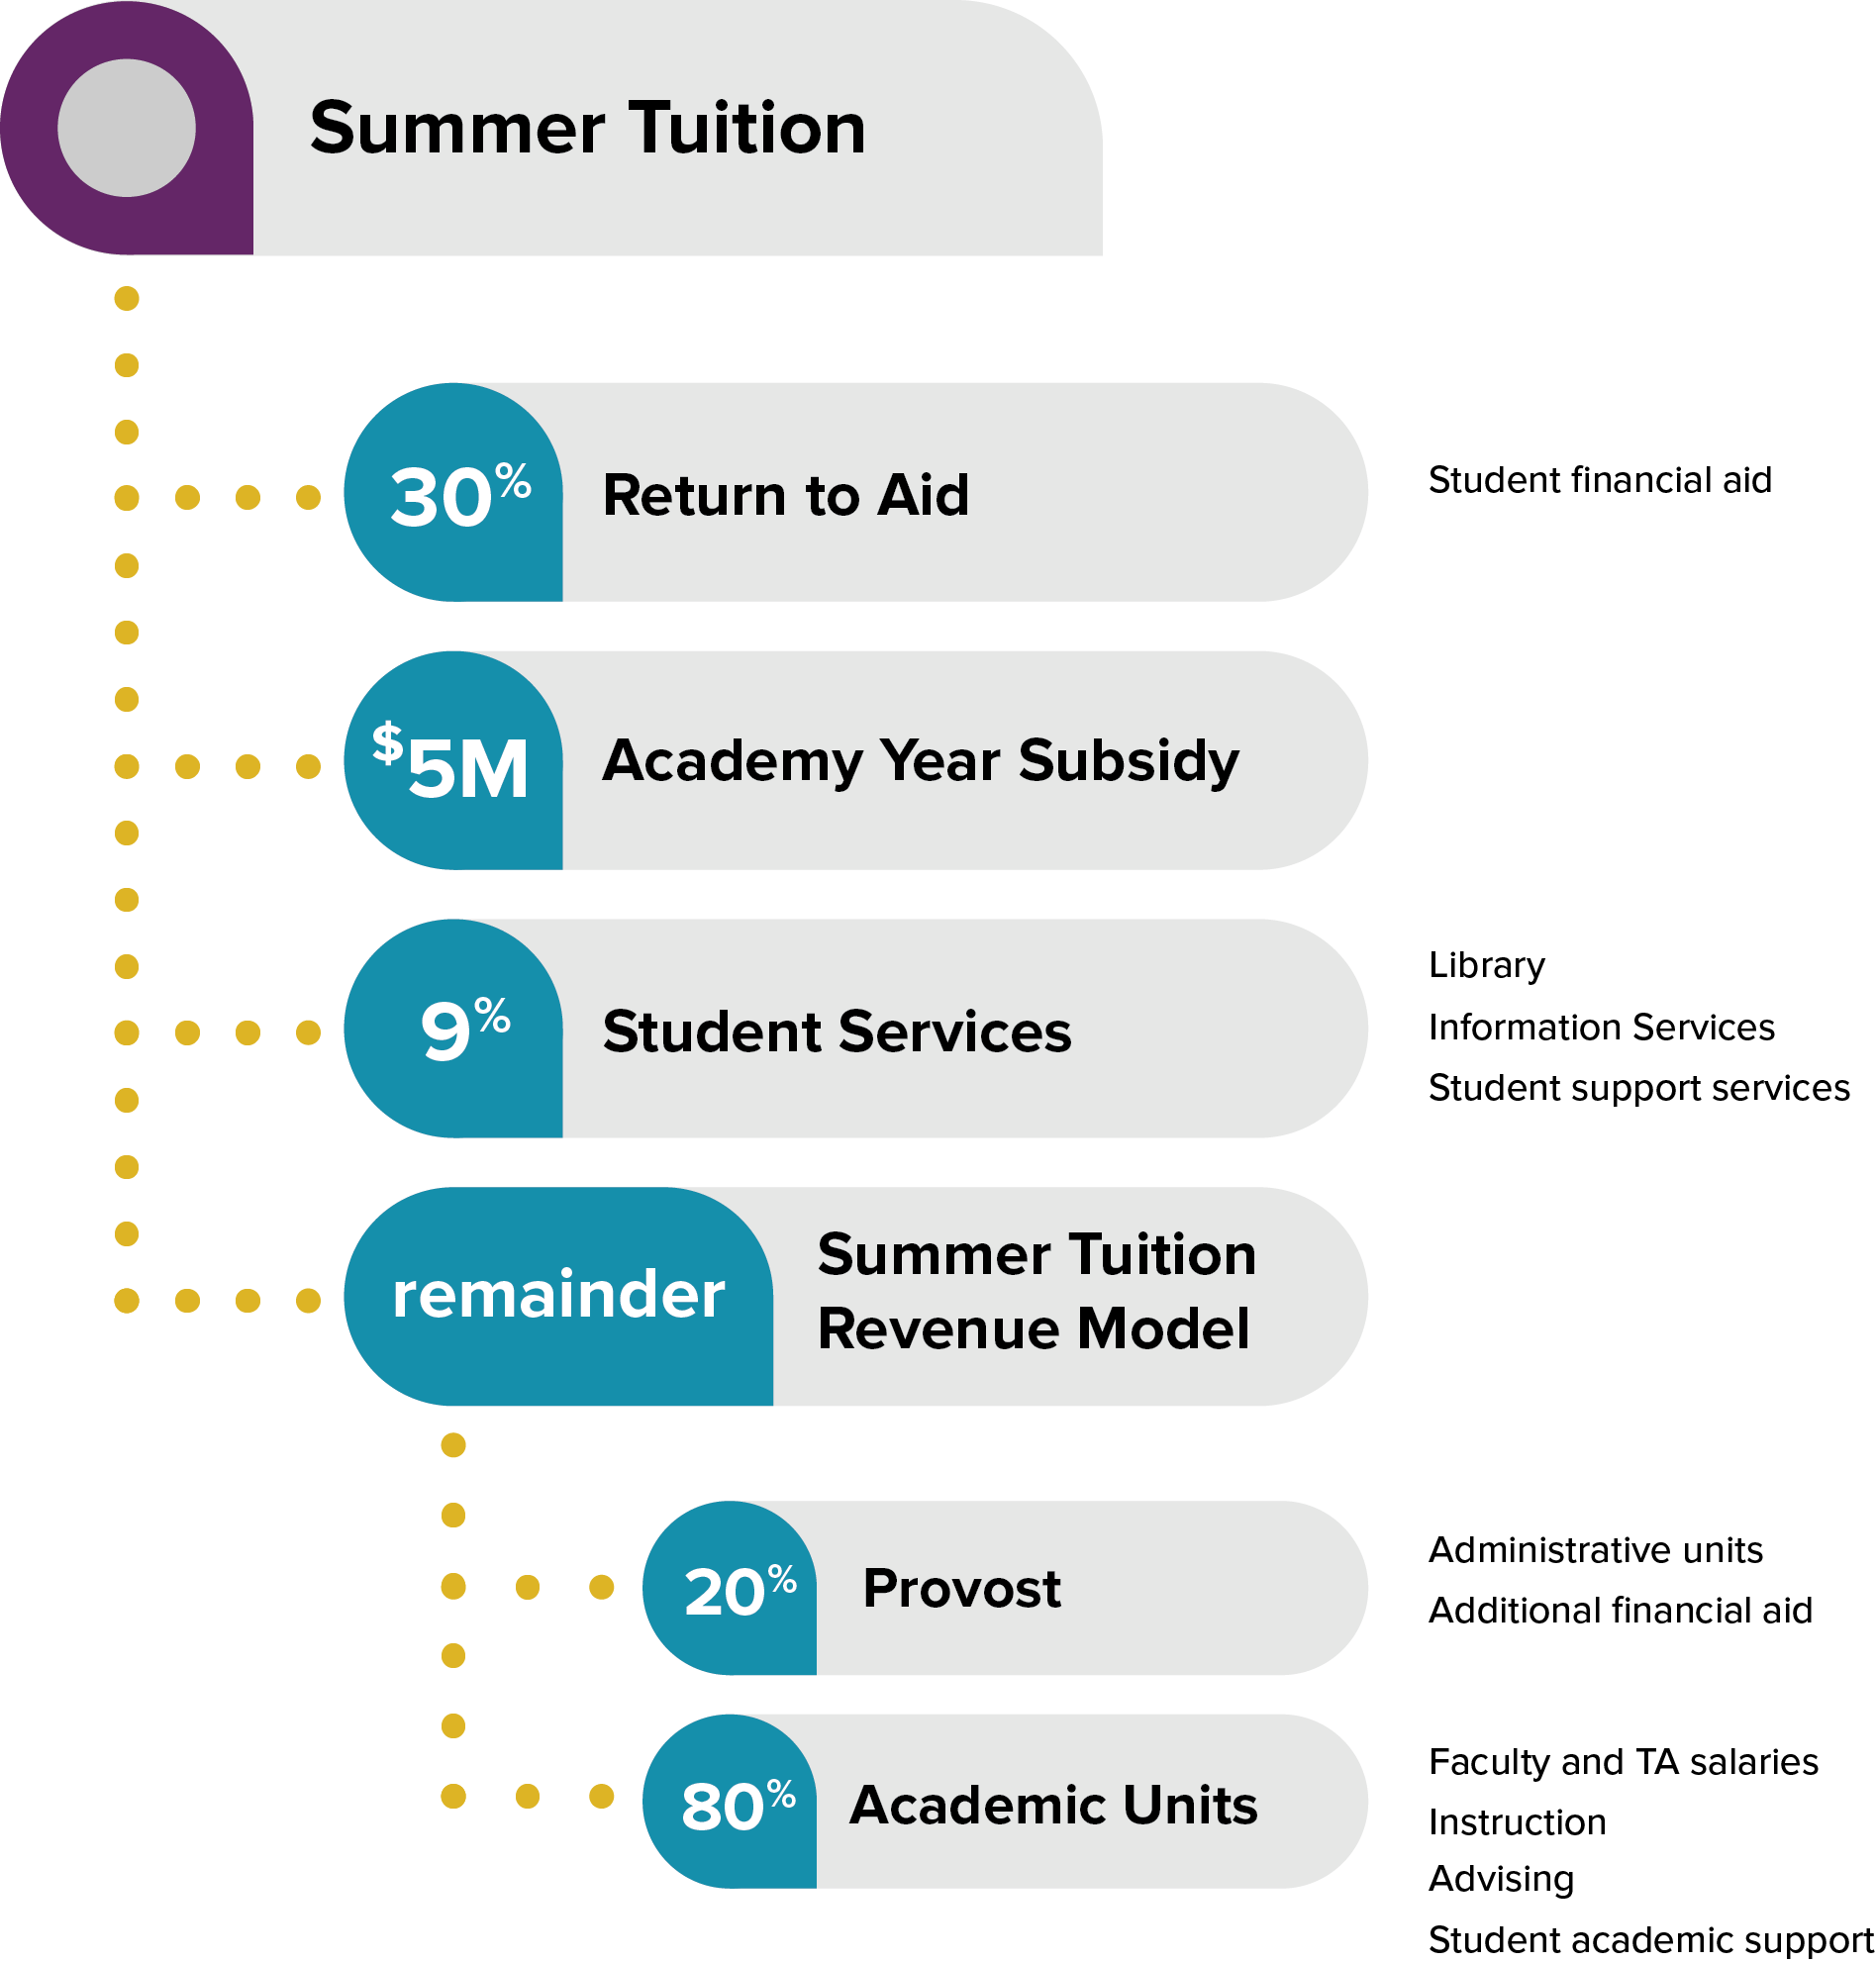 Diagram for incentive-based budget model for summer tuition, as described on the webpage